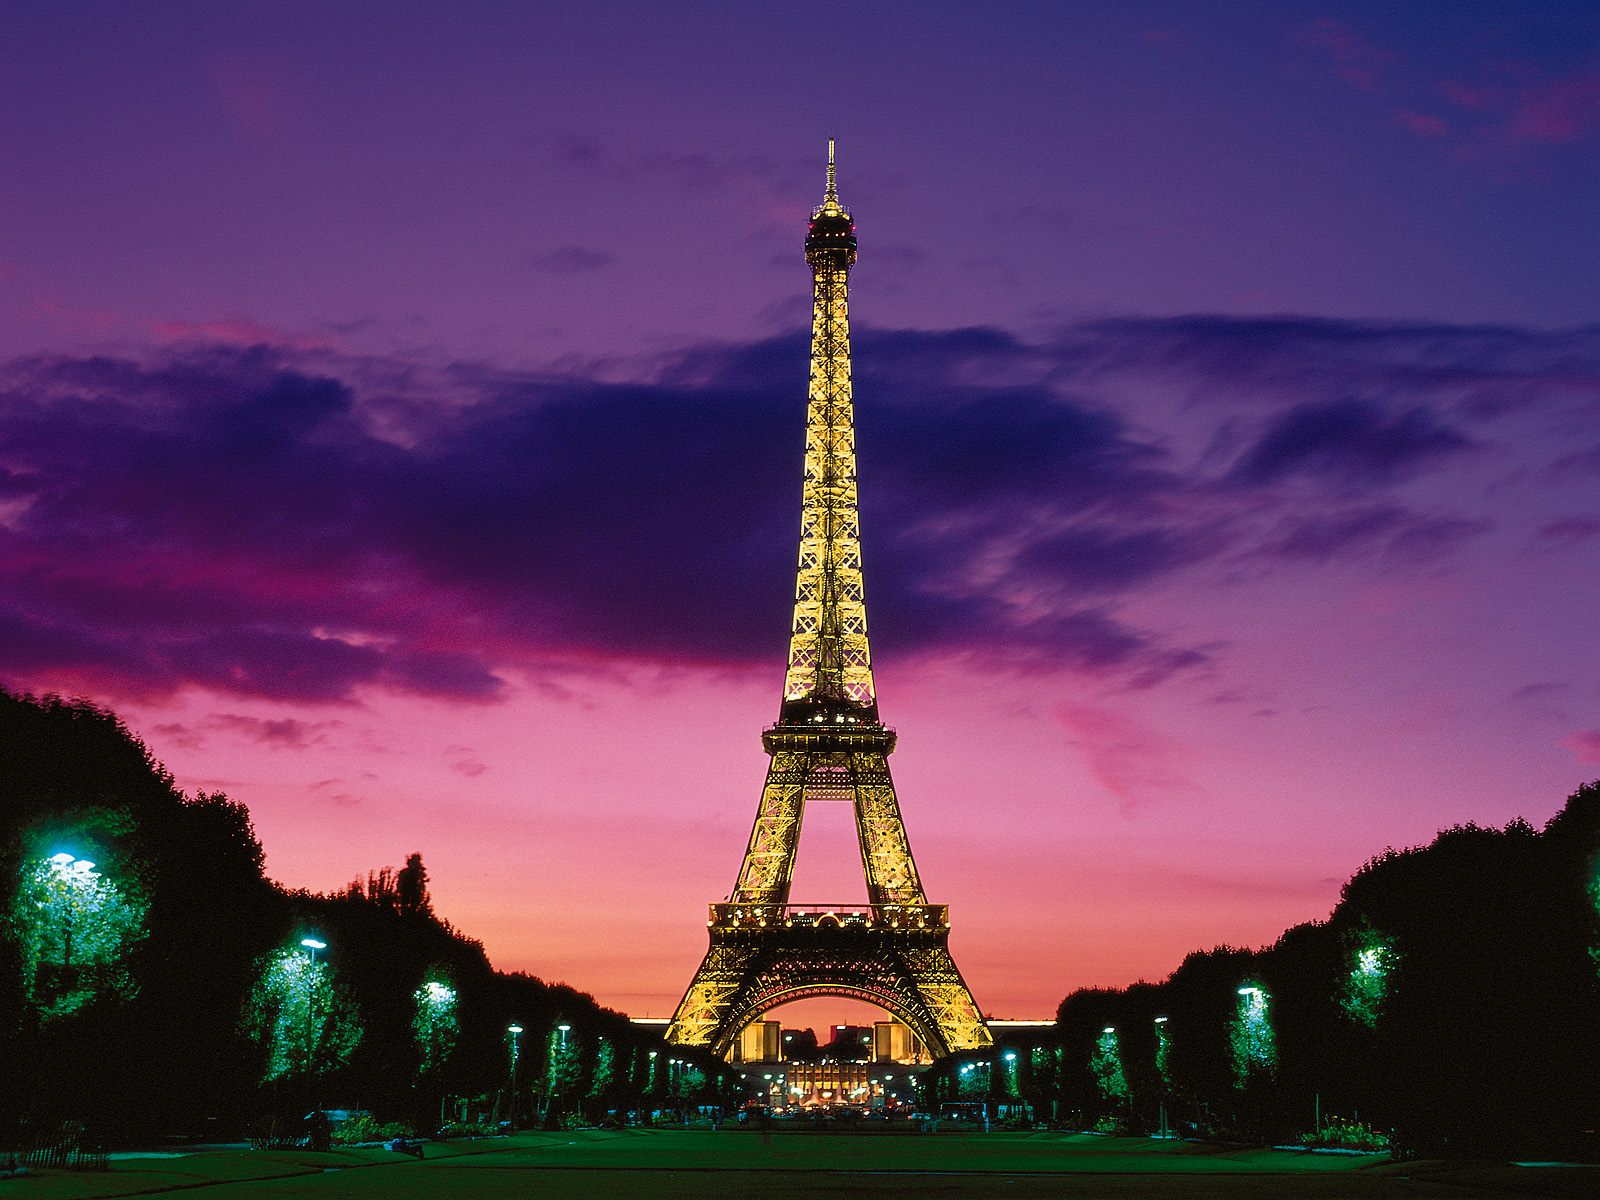 Eiffel Tower at Night Paris France 316.88 Kb